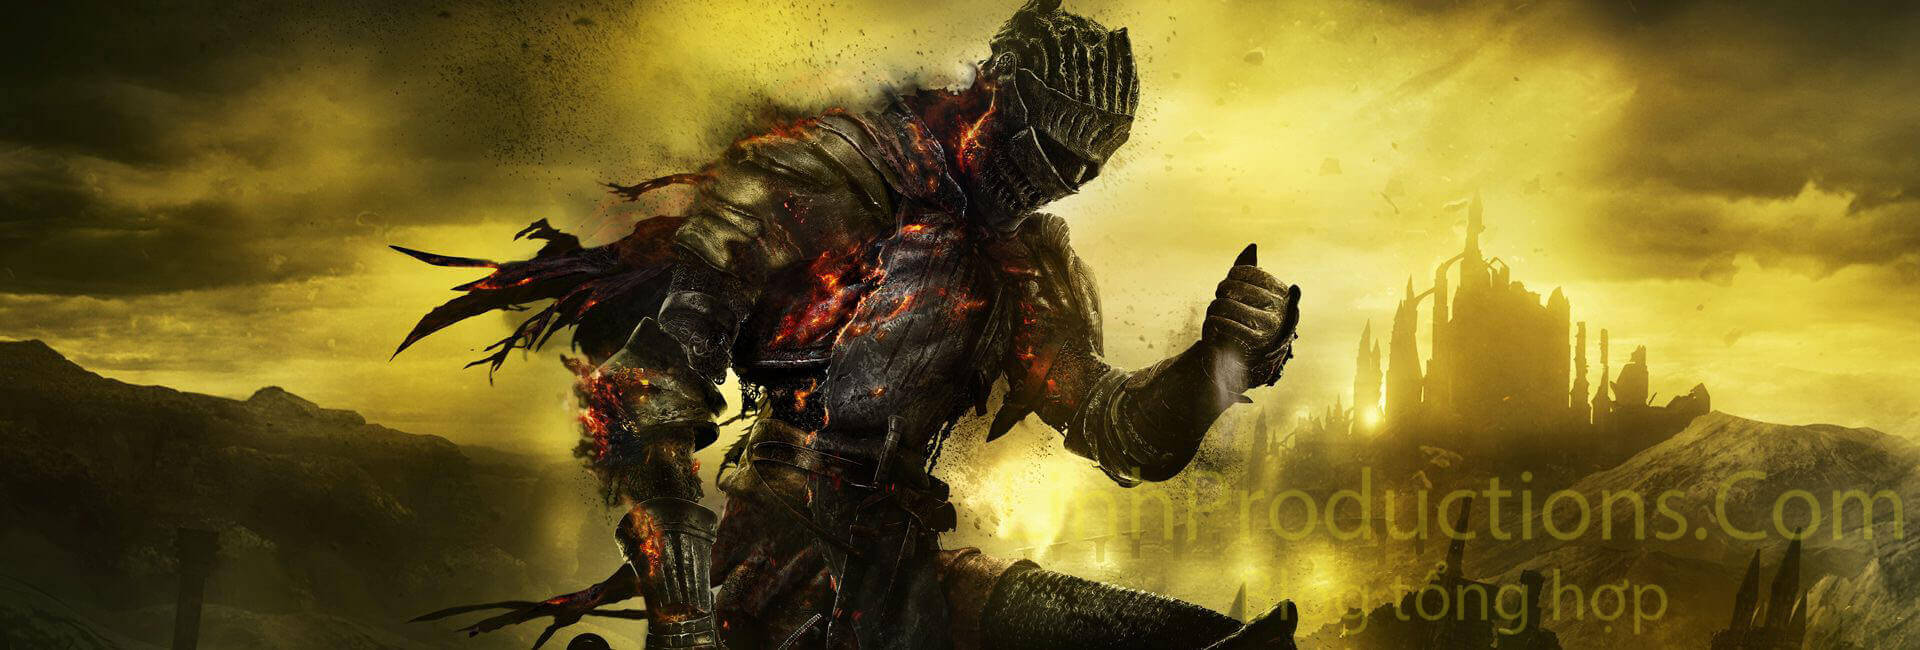 game ds 3